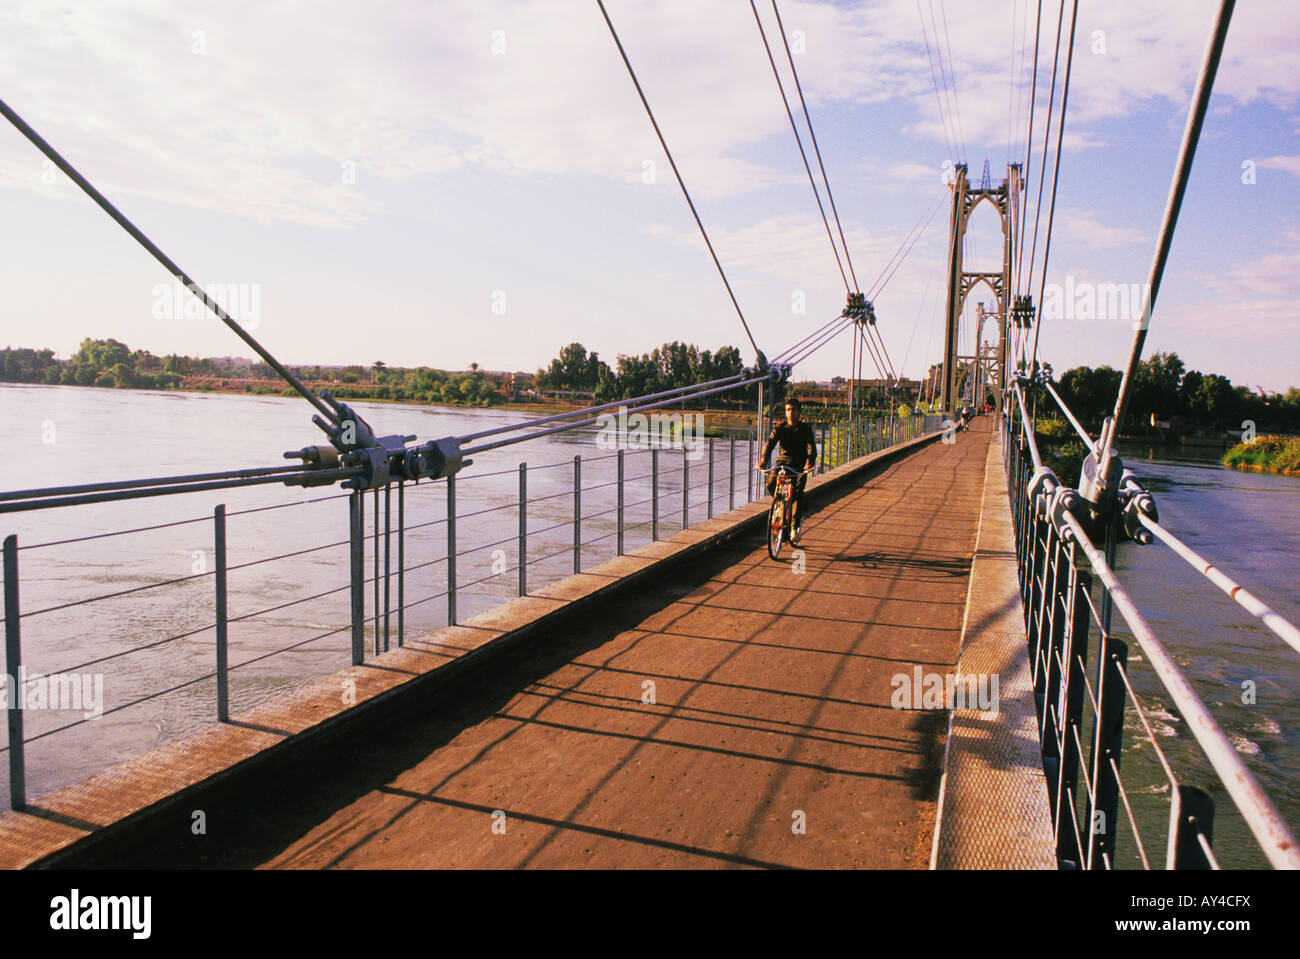 Young man rides bike across bridge over Euphrates River in Deir Ezzour in Syria - Stock Image